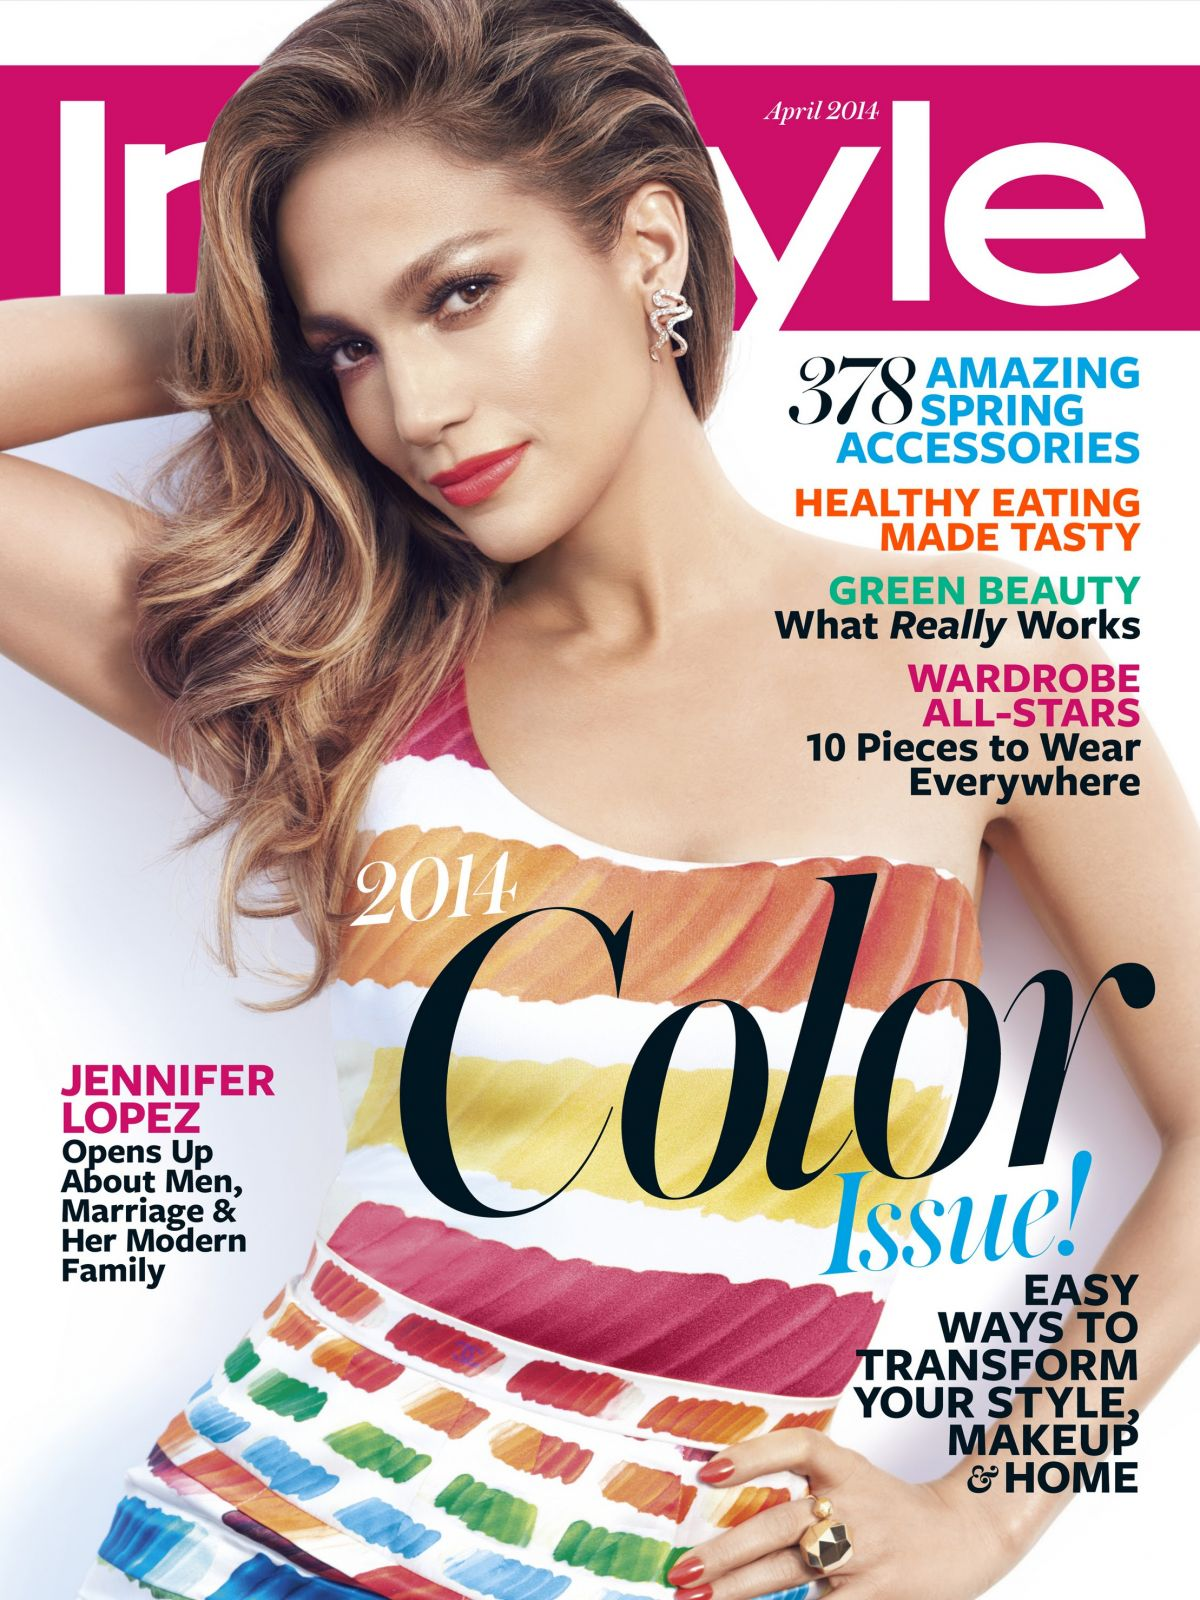 Instyle Magazine Us: JENNIFER LOPEZ In Instyle Magazine, April 2014 Issue